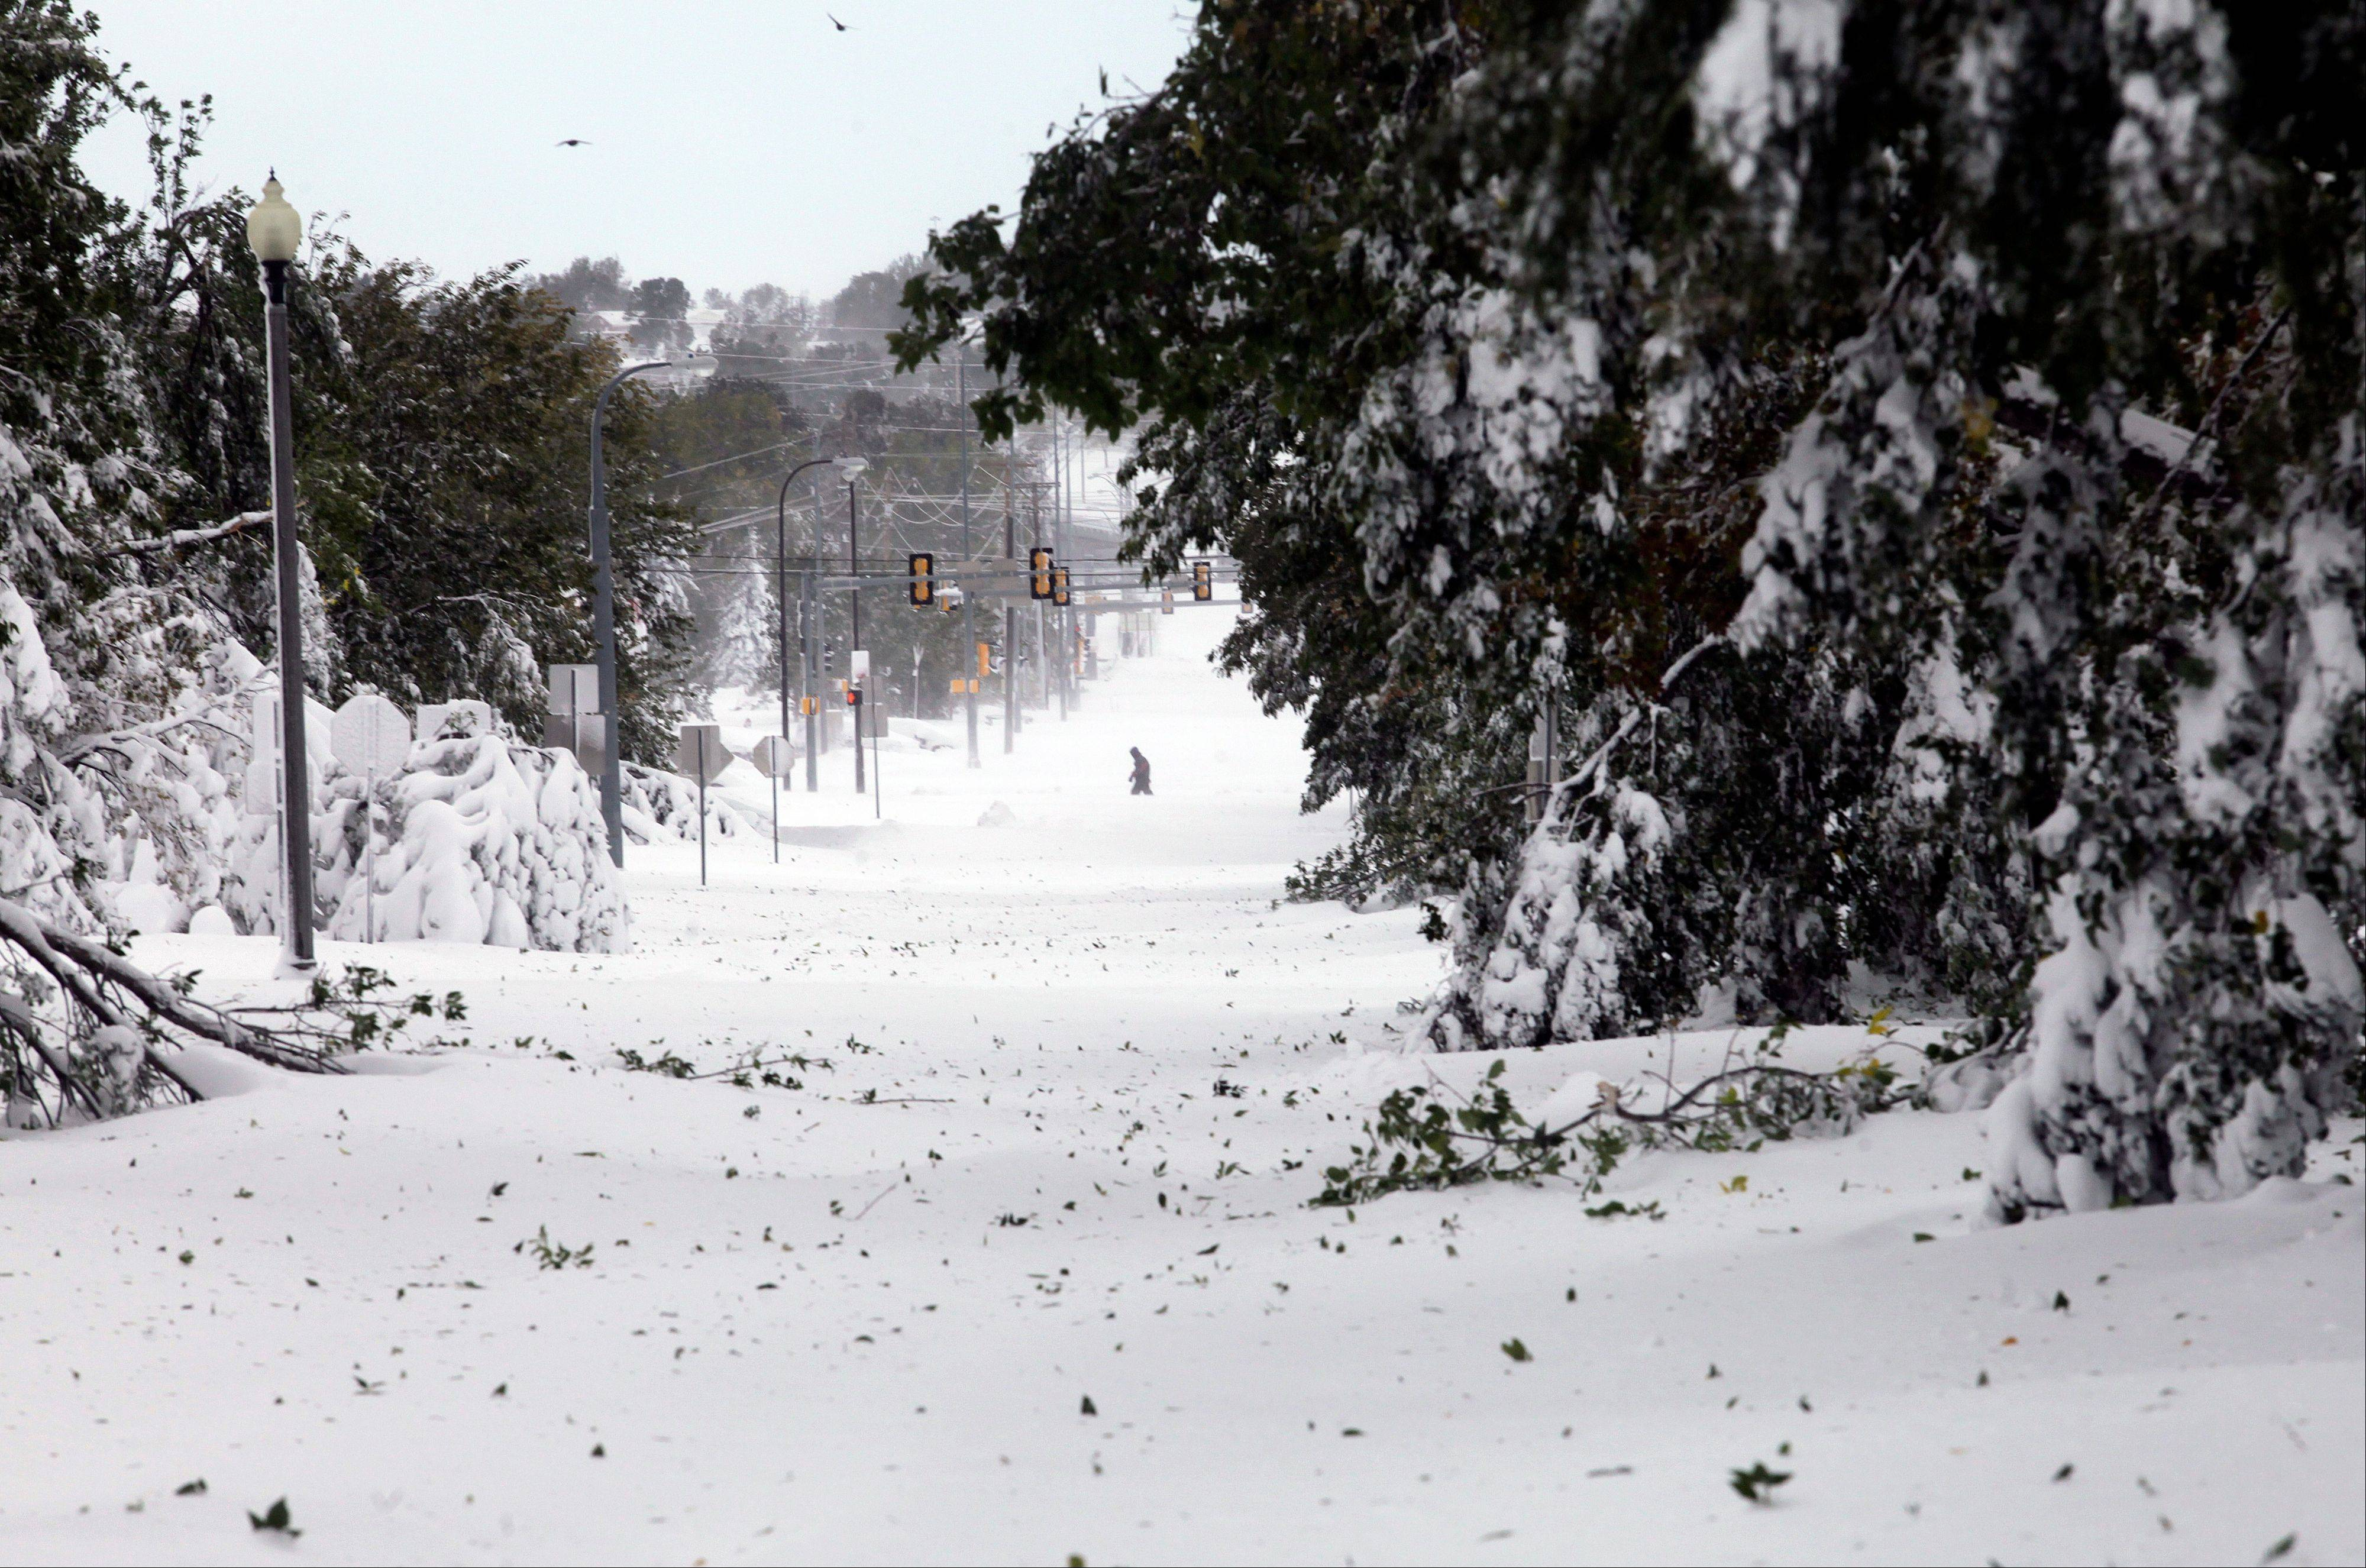 A pedestrian walks by West Boulevard in Rapid City, S.D,, Saturday, Oct. 5. South Dakota emergency agencies are asking snowmobile operators in the Rapid City area to help find motorists stranded by an autumn storm. The National Weather Service says the storm dumped at least three and a half feet of wet, heavy snow in the Black Hills. Rapid City had 21 inches, but 31 inches was recorded just a mile southwest of the city.